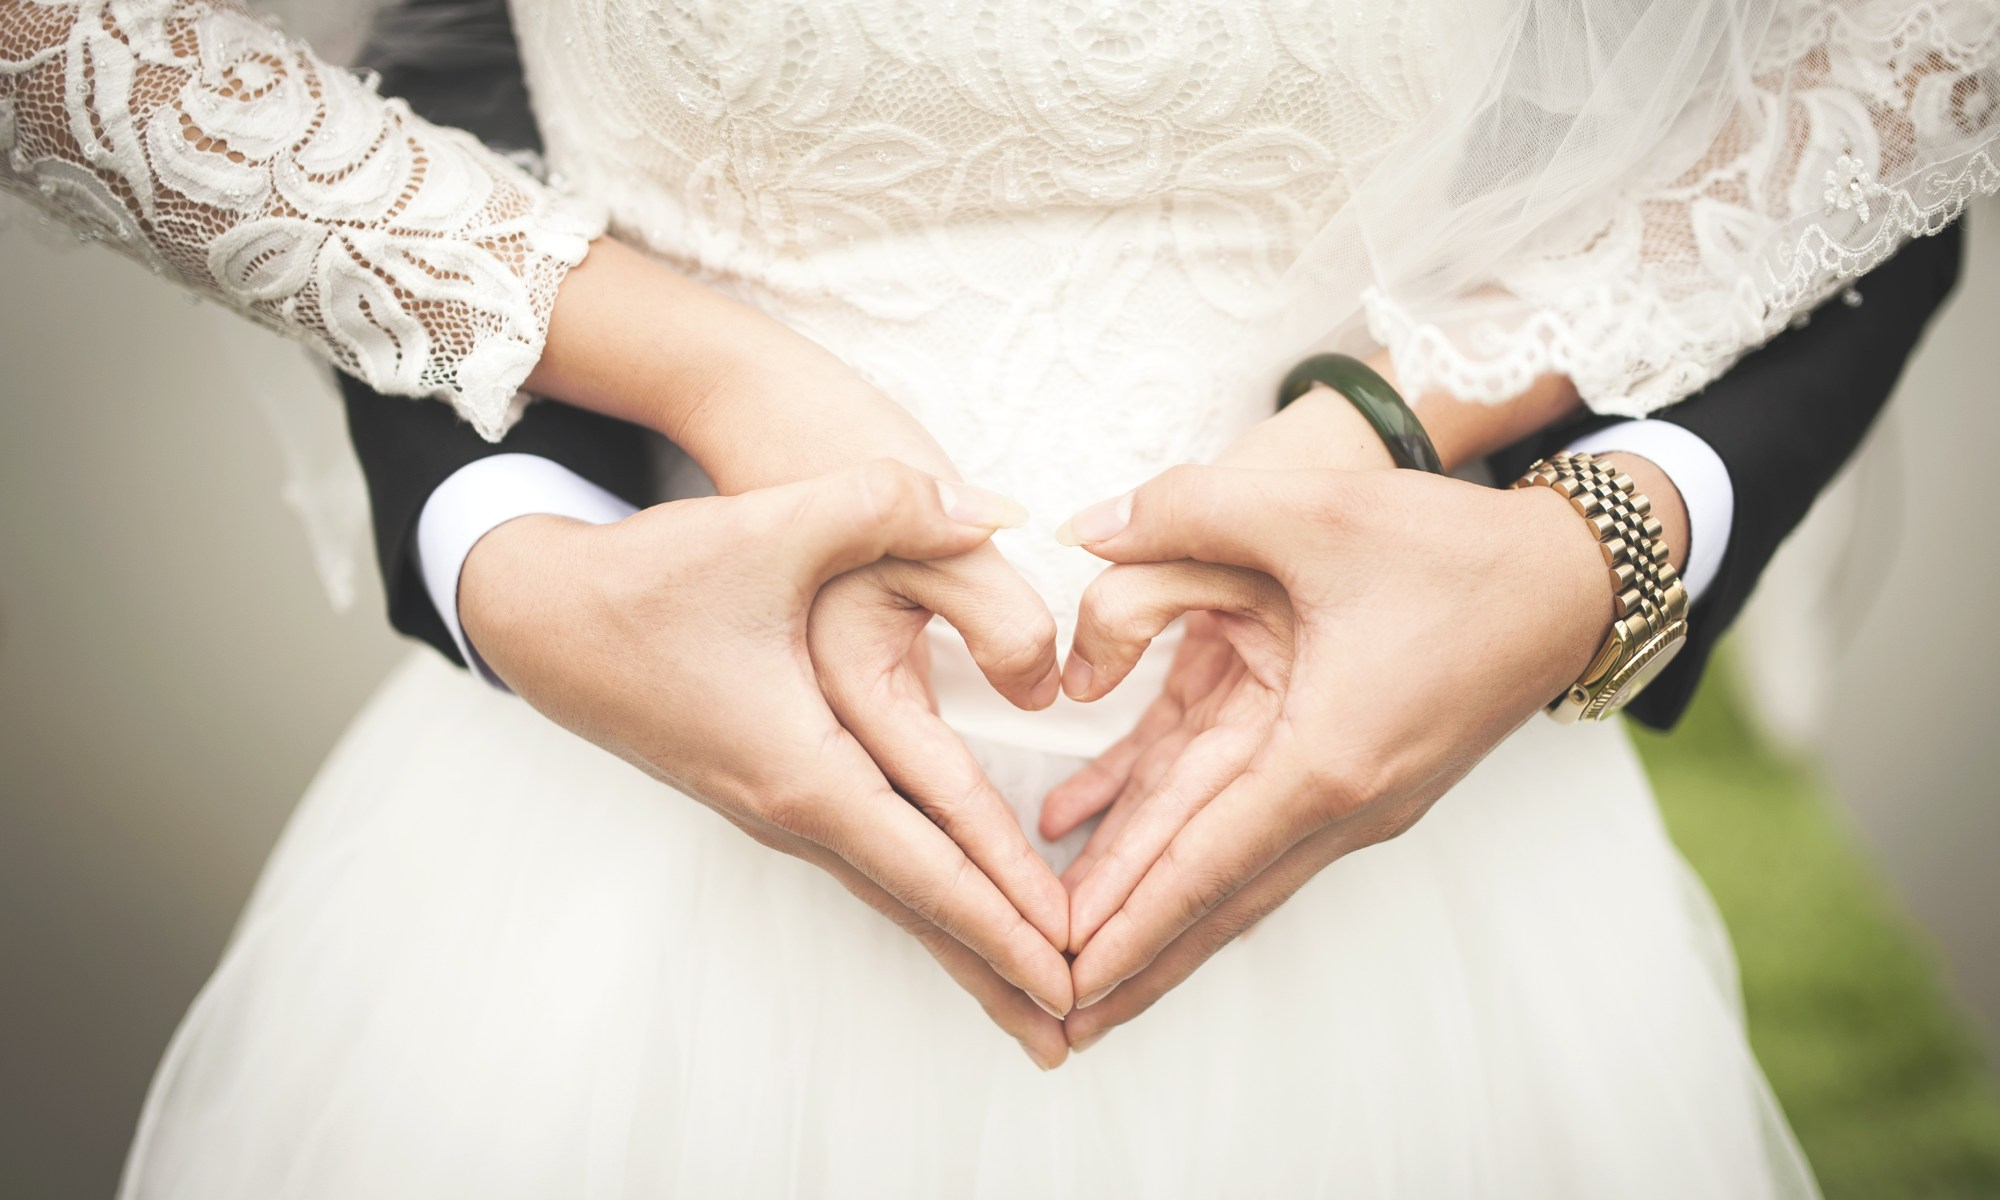 Husband and wife create heart shape with hands to celebrate marriage. Marriage Ceremony